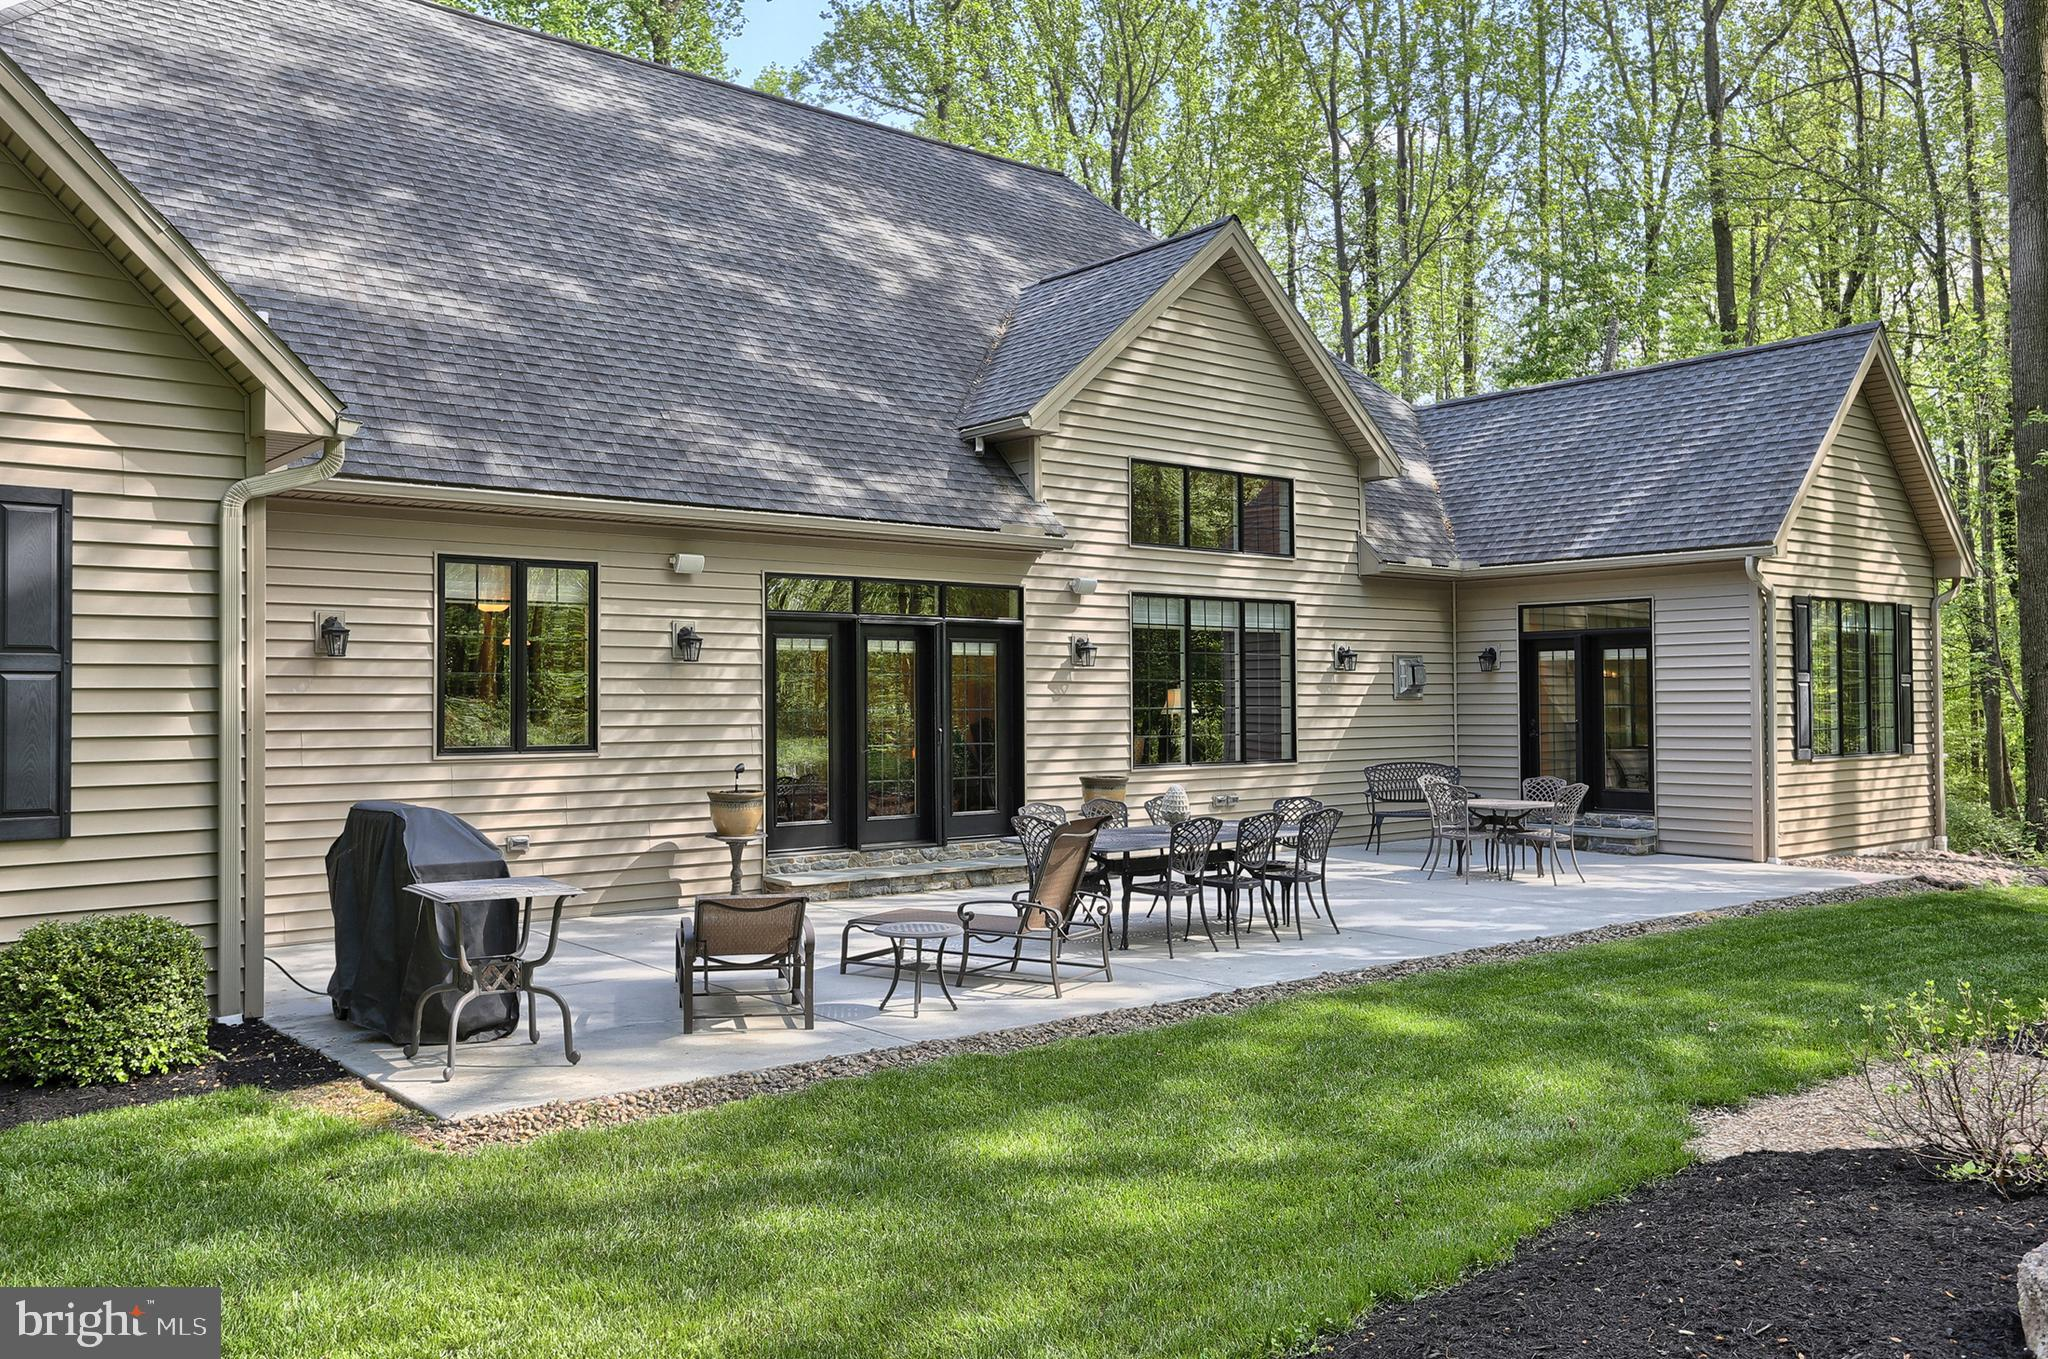 Carricato Homes: Central PA choice home builder